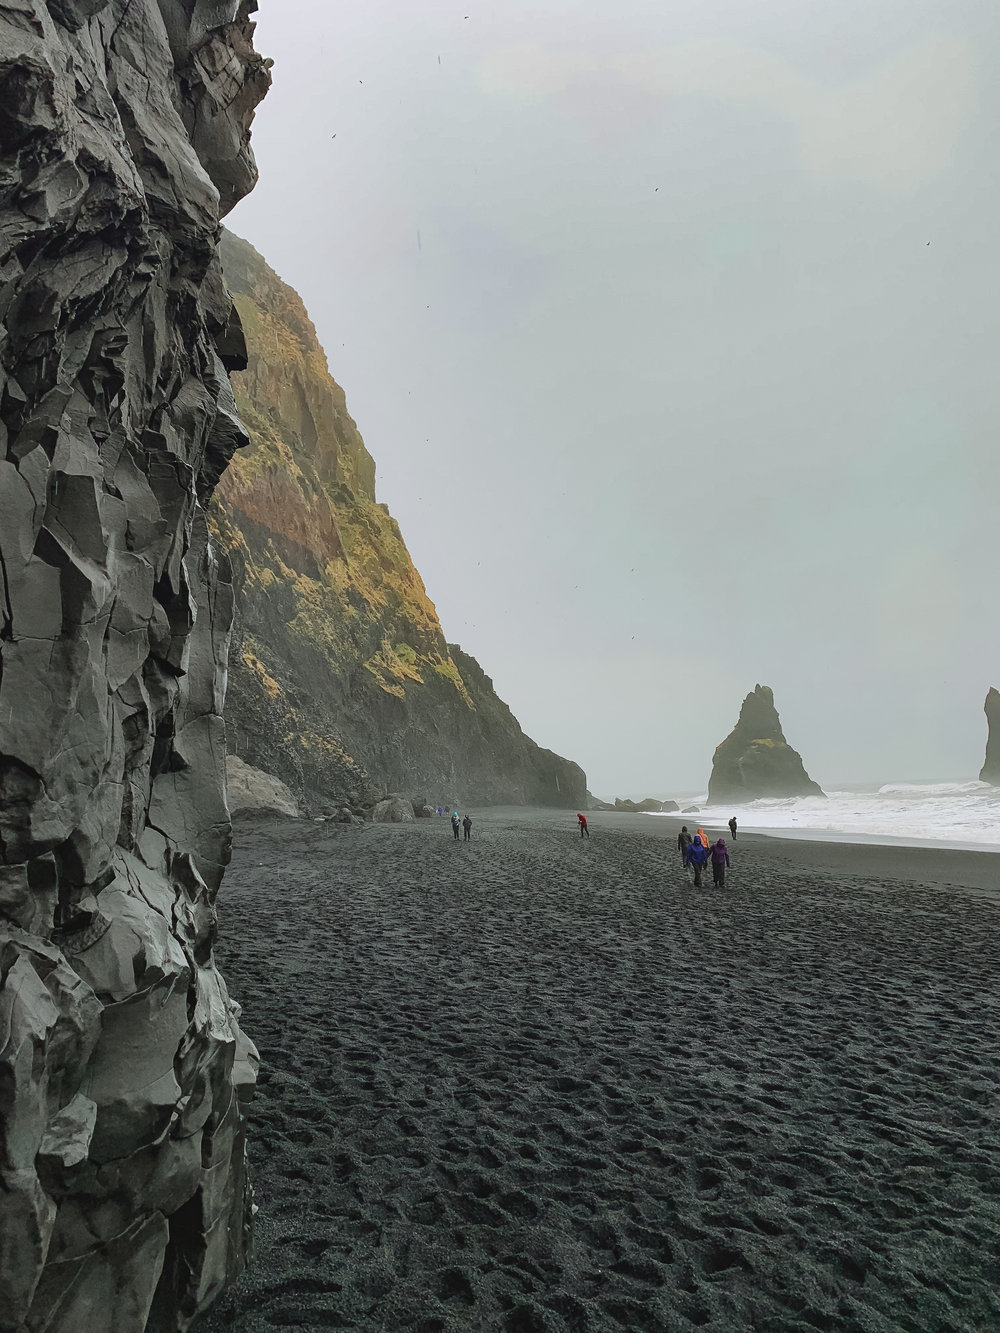 Our first stop was Black Sands Beach, which is known for its incredible basalt rock formations.